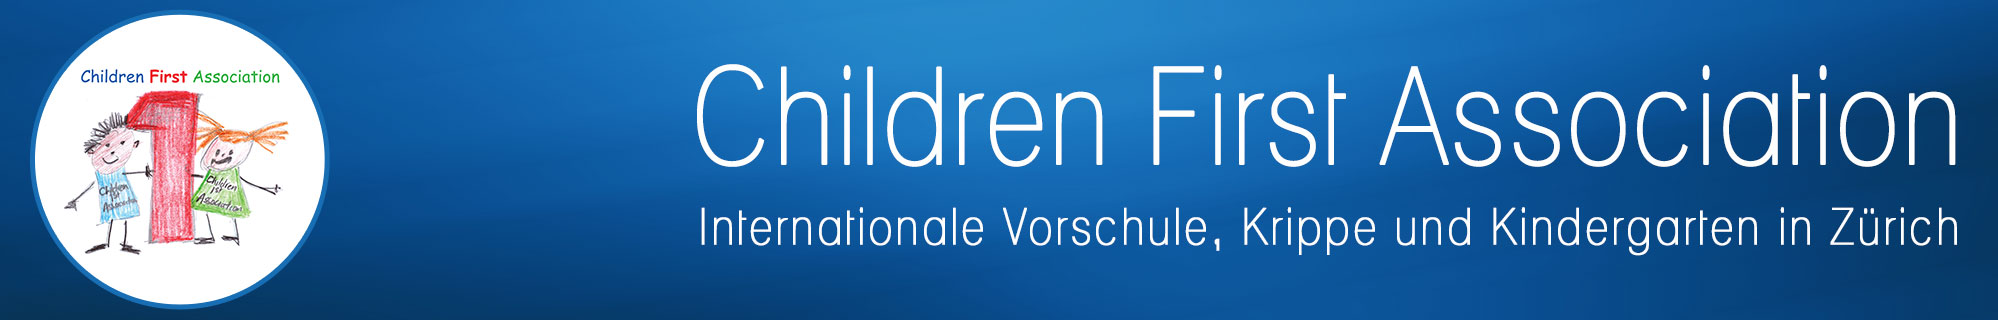 Internationale Vorschule, Krippe und Kindergarten in Zürich | Children First Association